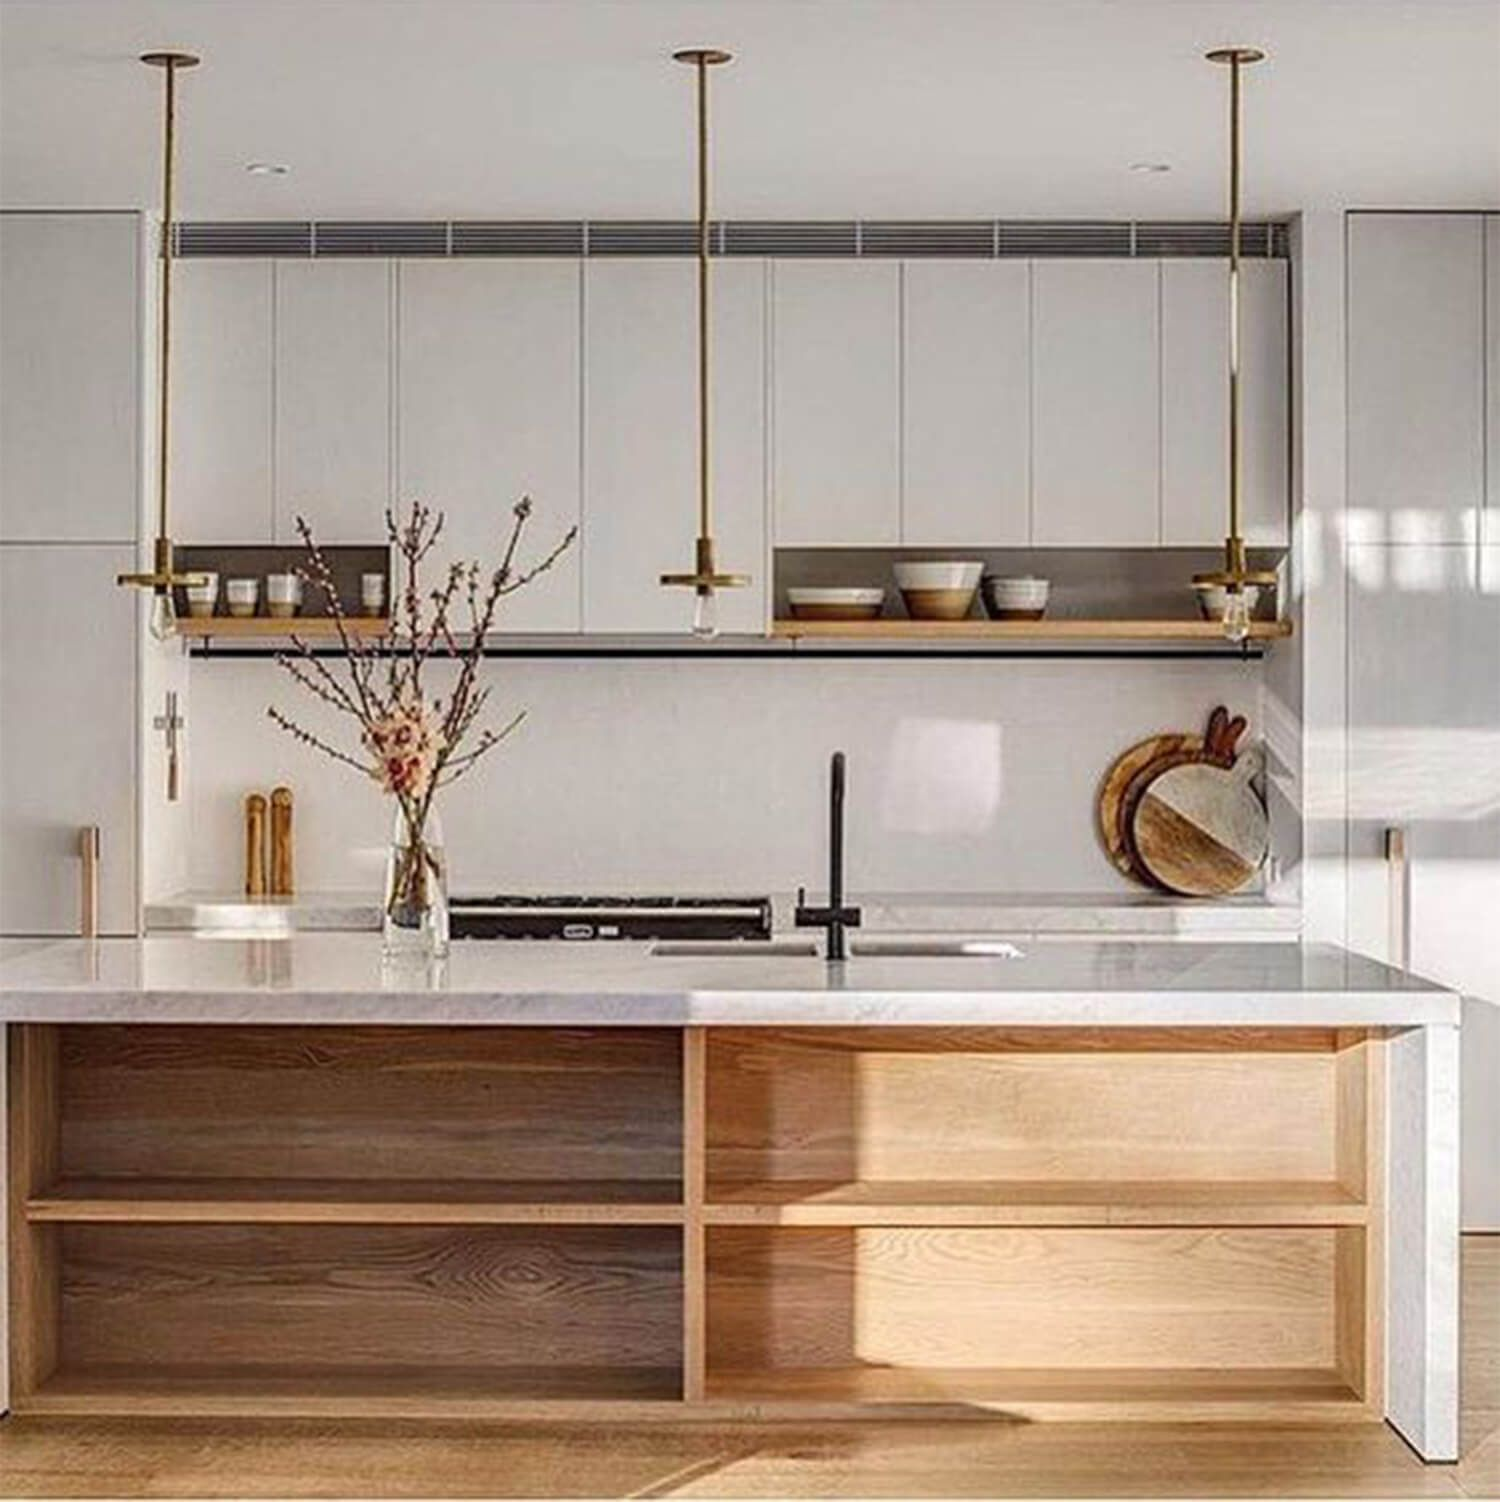 Top 7 Timber Kitchens We Found On Pinterest This Week